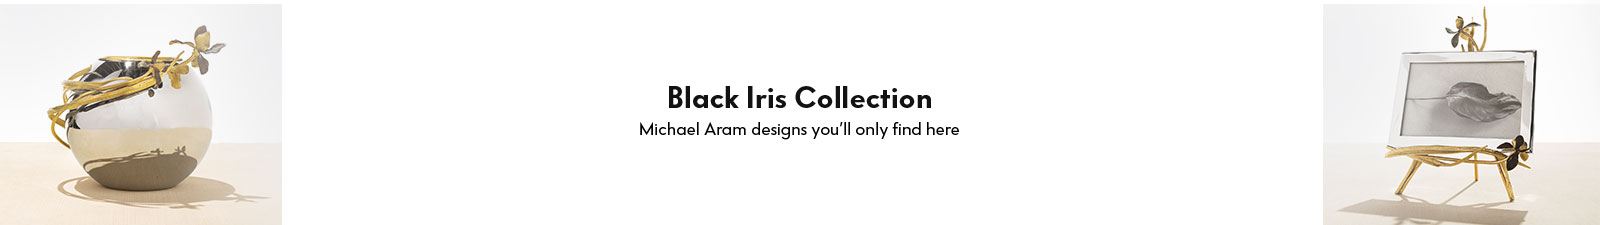 Michael Aram Black Iris Collection